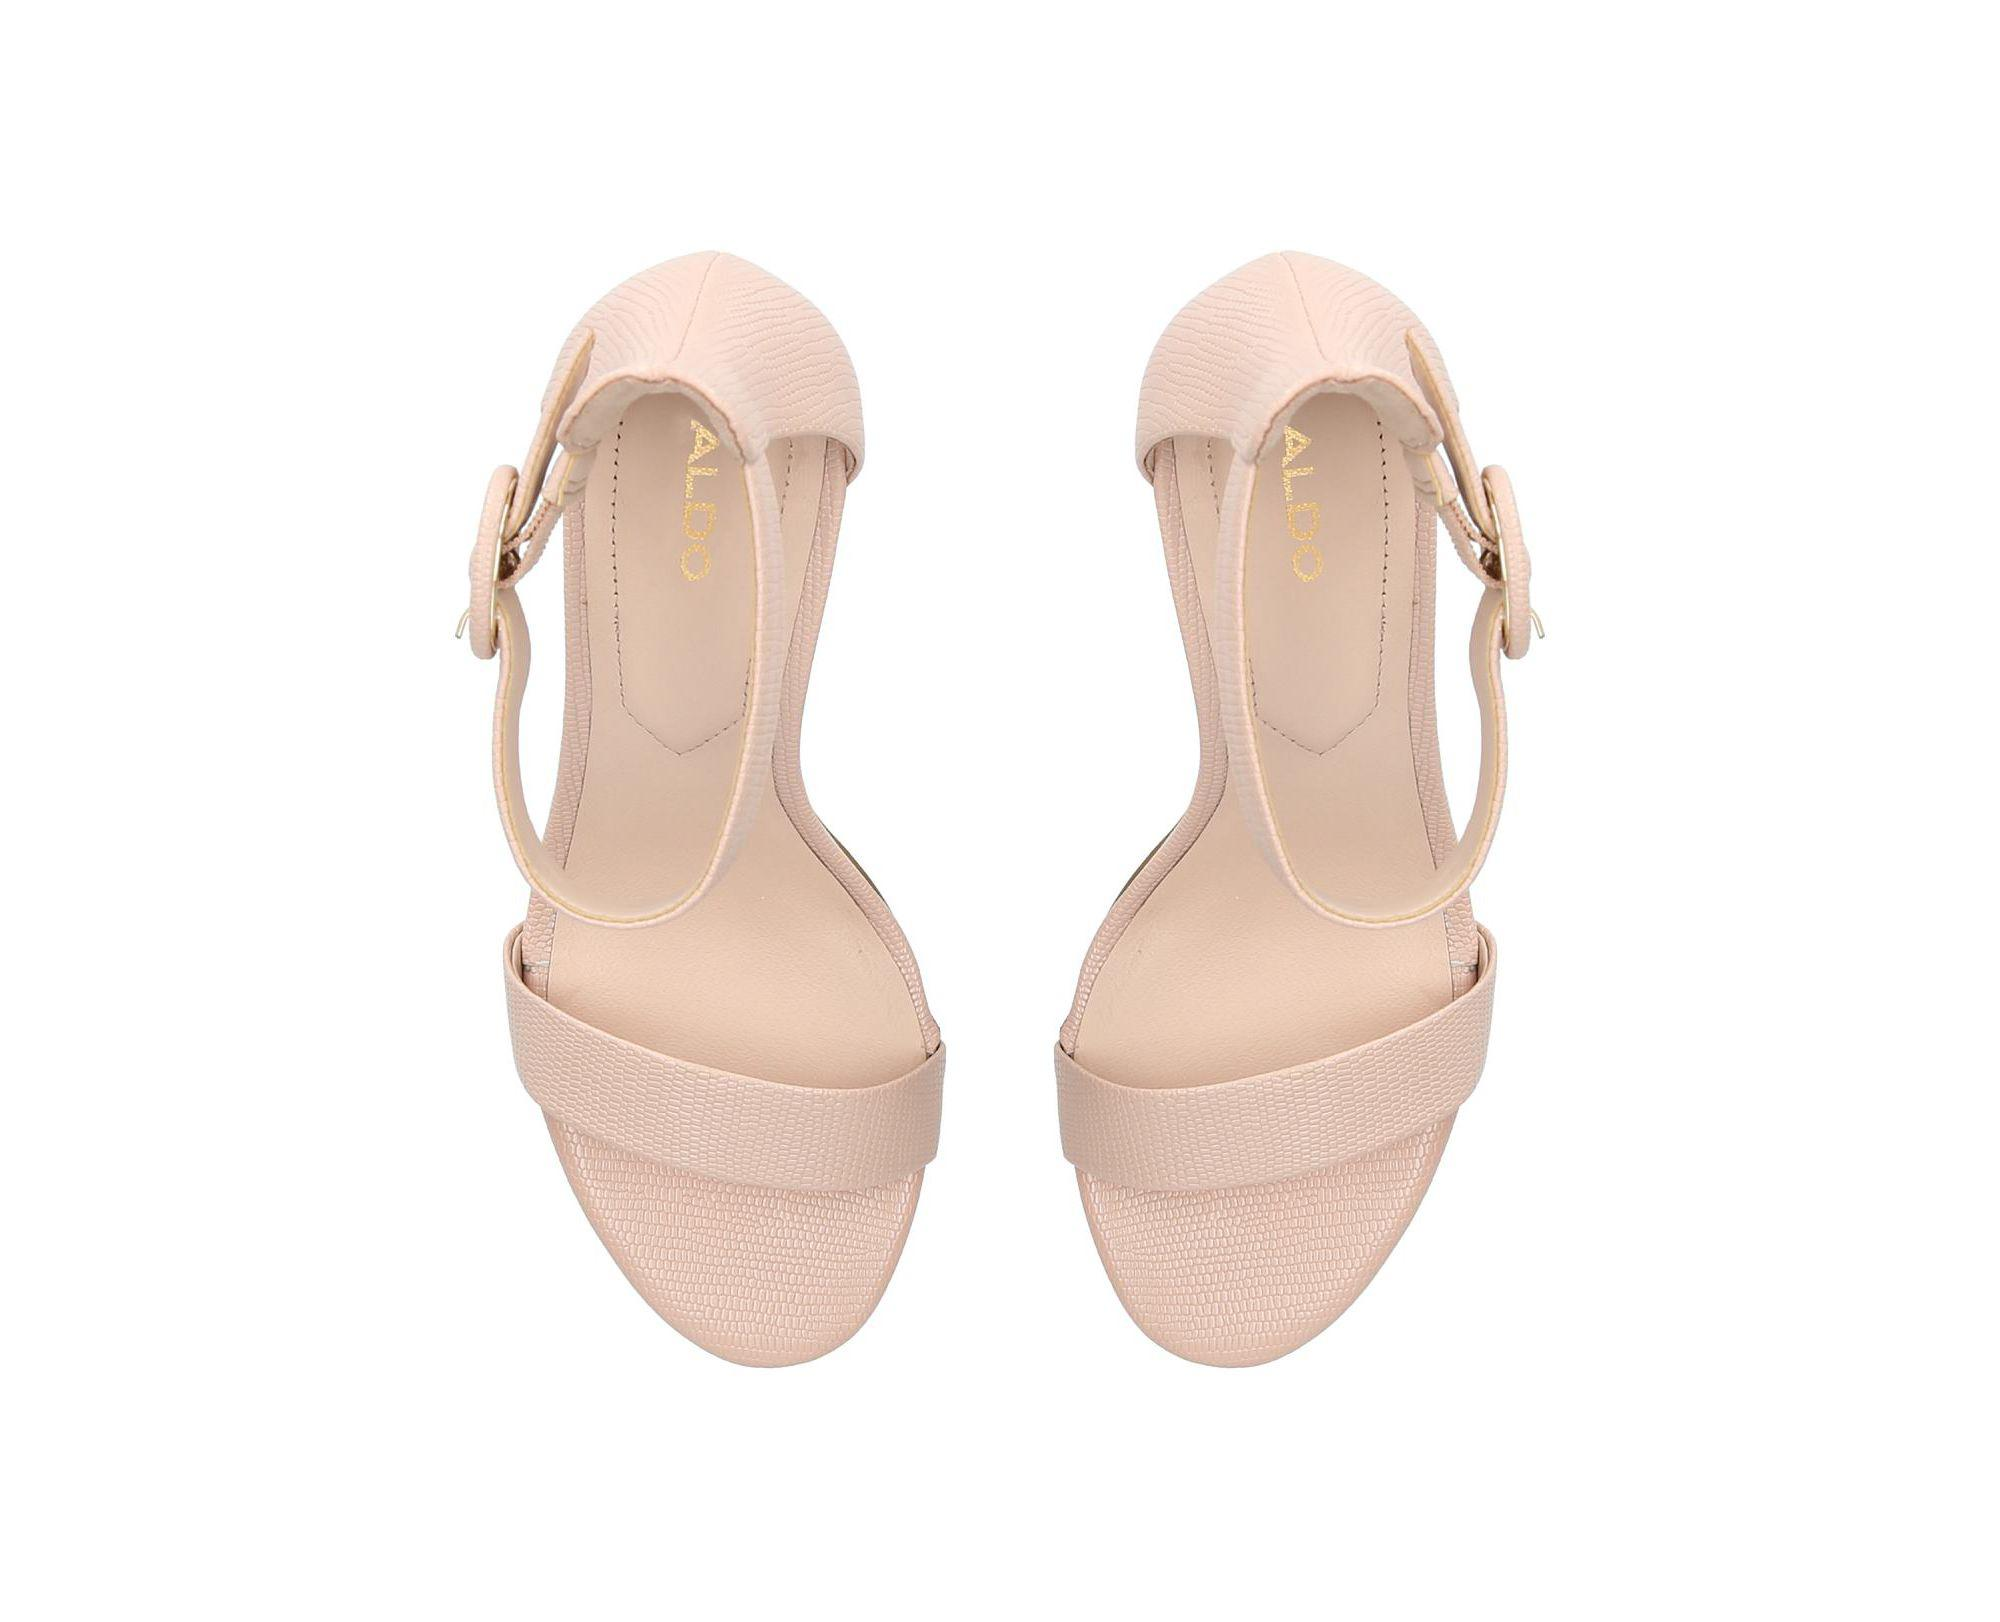 573abc319f46 ALDO - Natural Nude  yenalia  Strappy Heeled Sandals - Lyst. View fullscreen